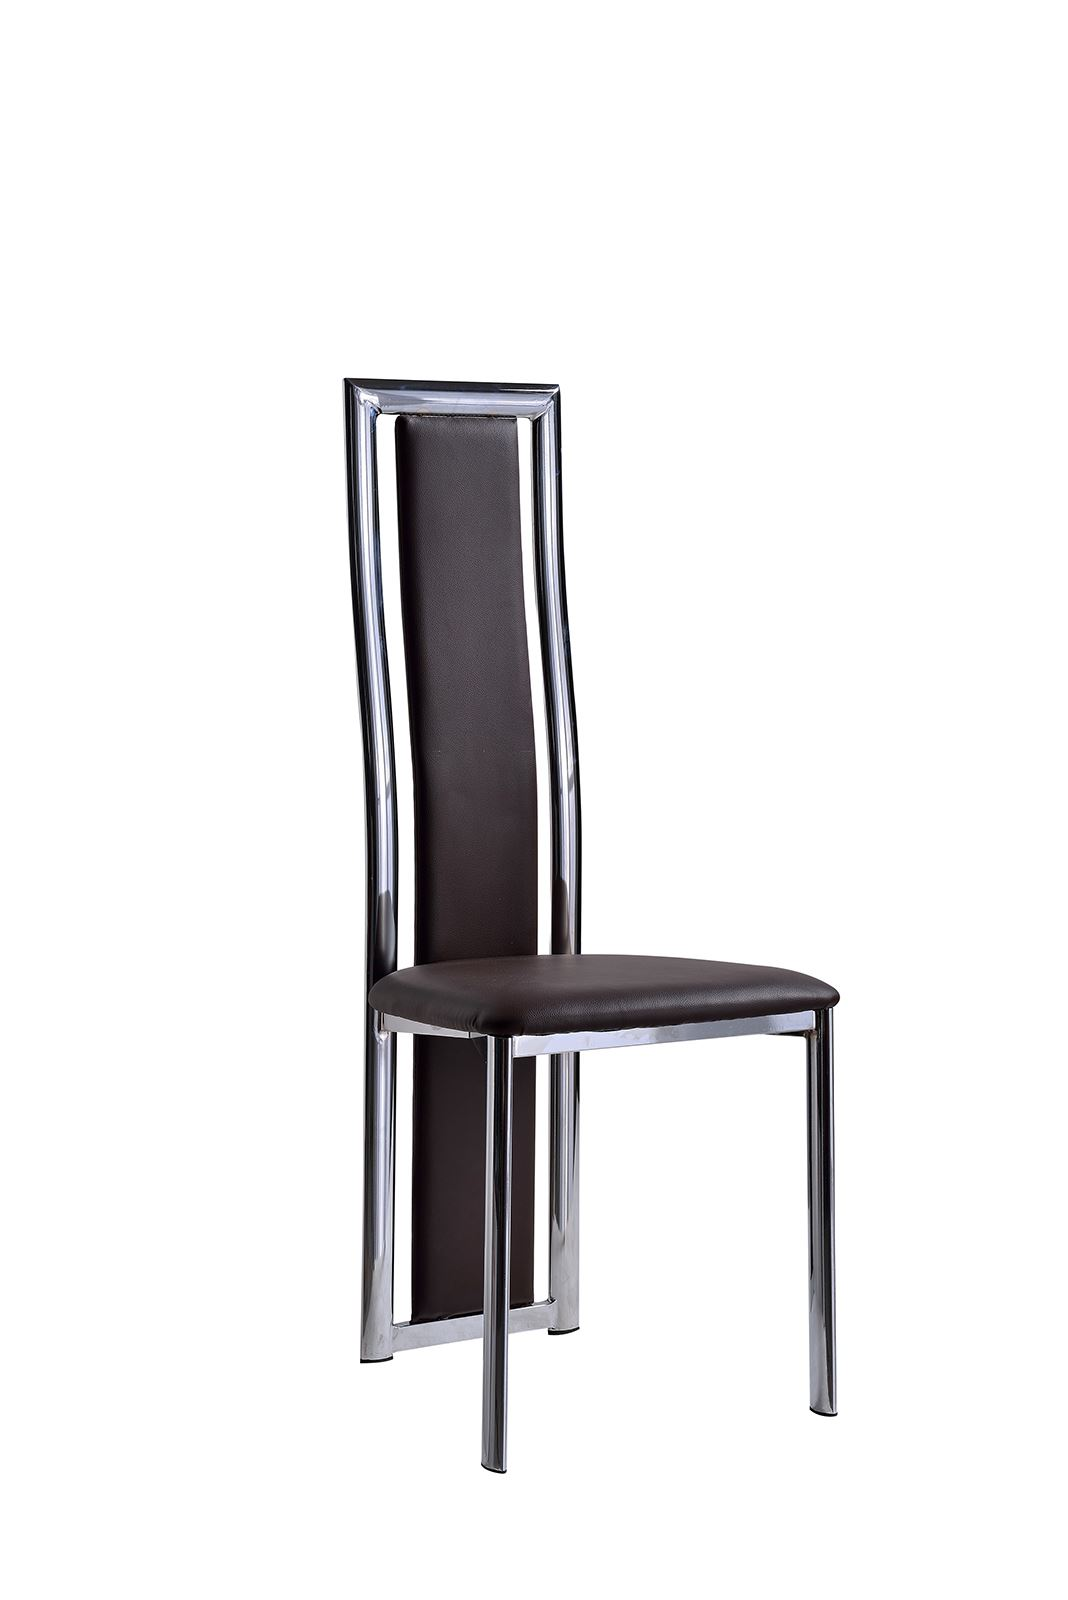 leather armchair metal frame maloof rocking chair elsa black faux dining room chairs kitchen